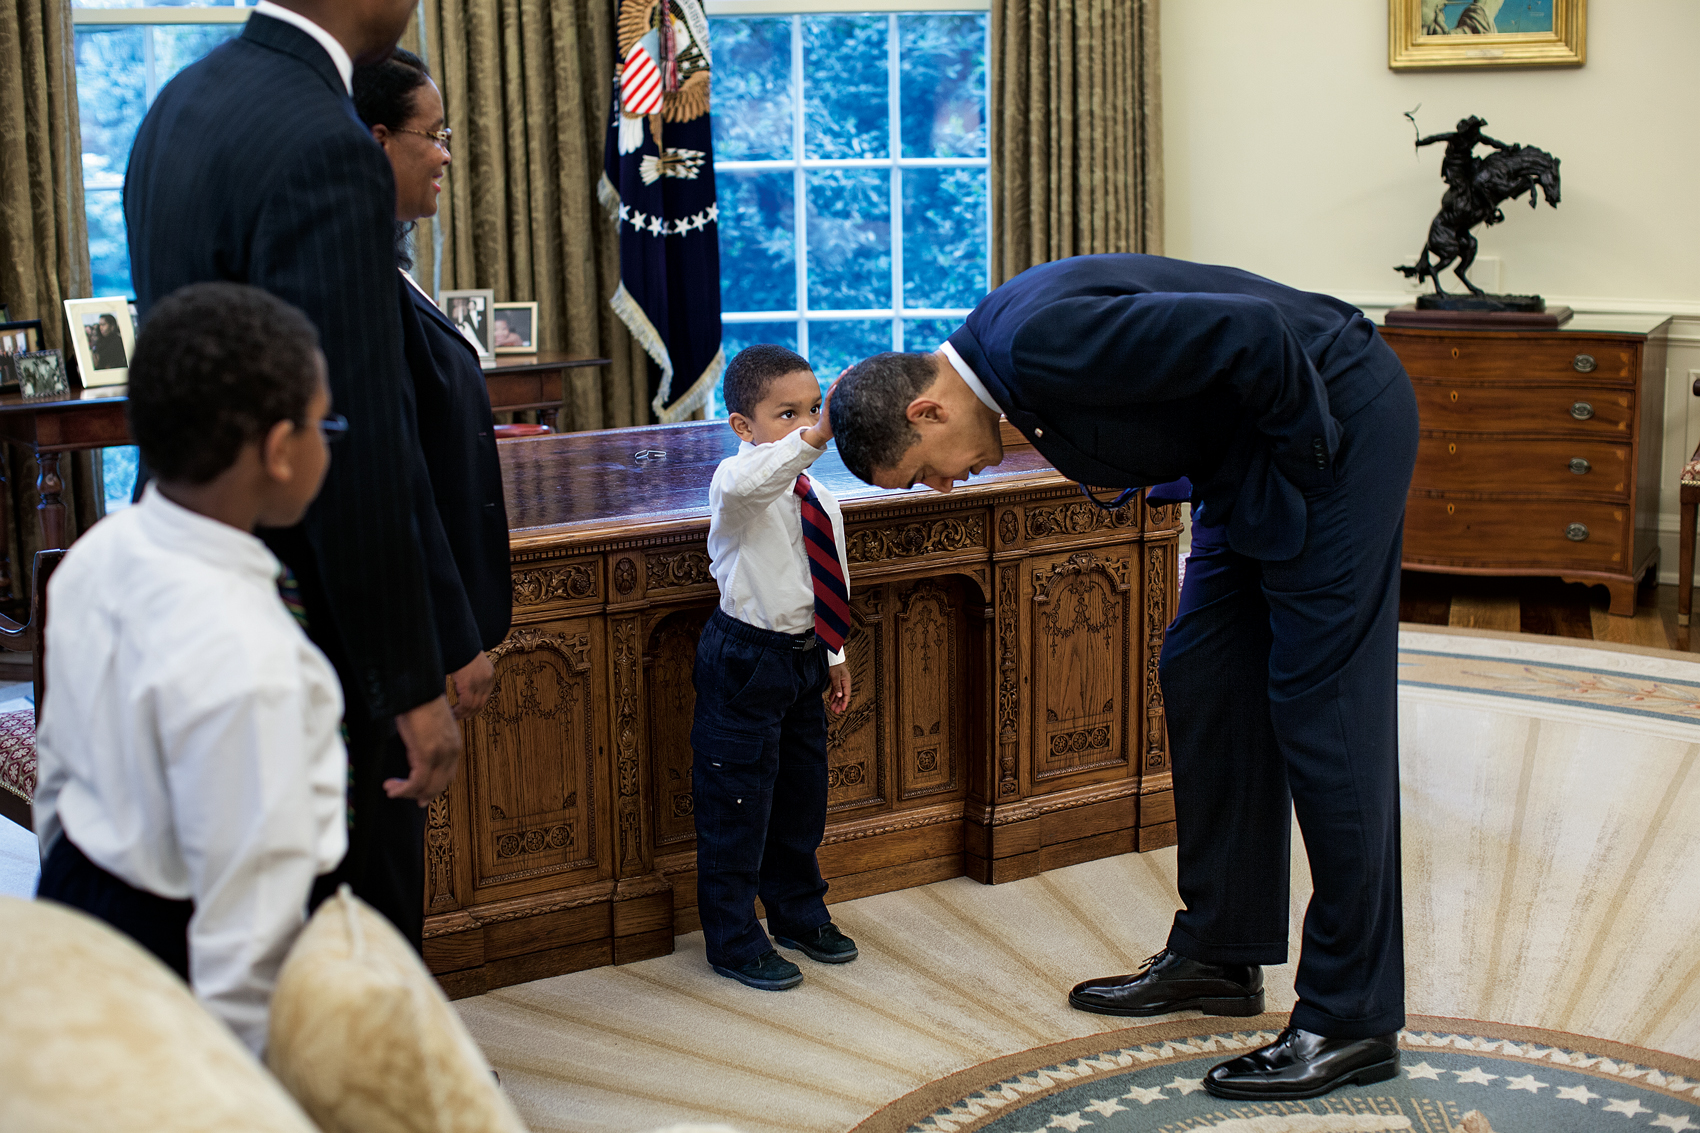 Afternoon meetings Friday, May 8, 2009. (Courtesy of Little, Brown and Company/Pete Souza)